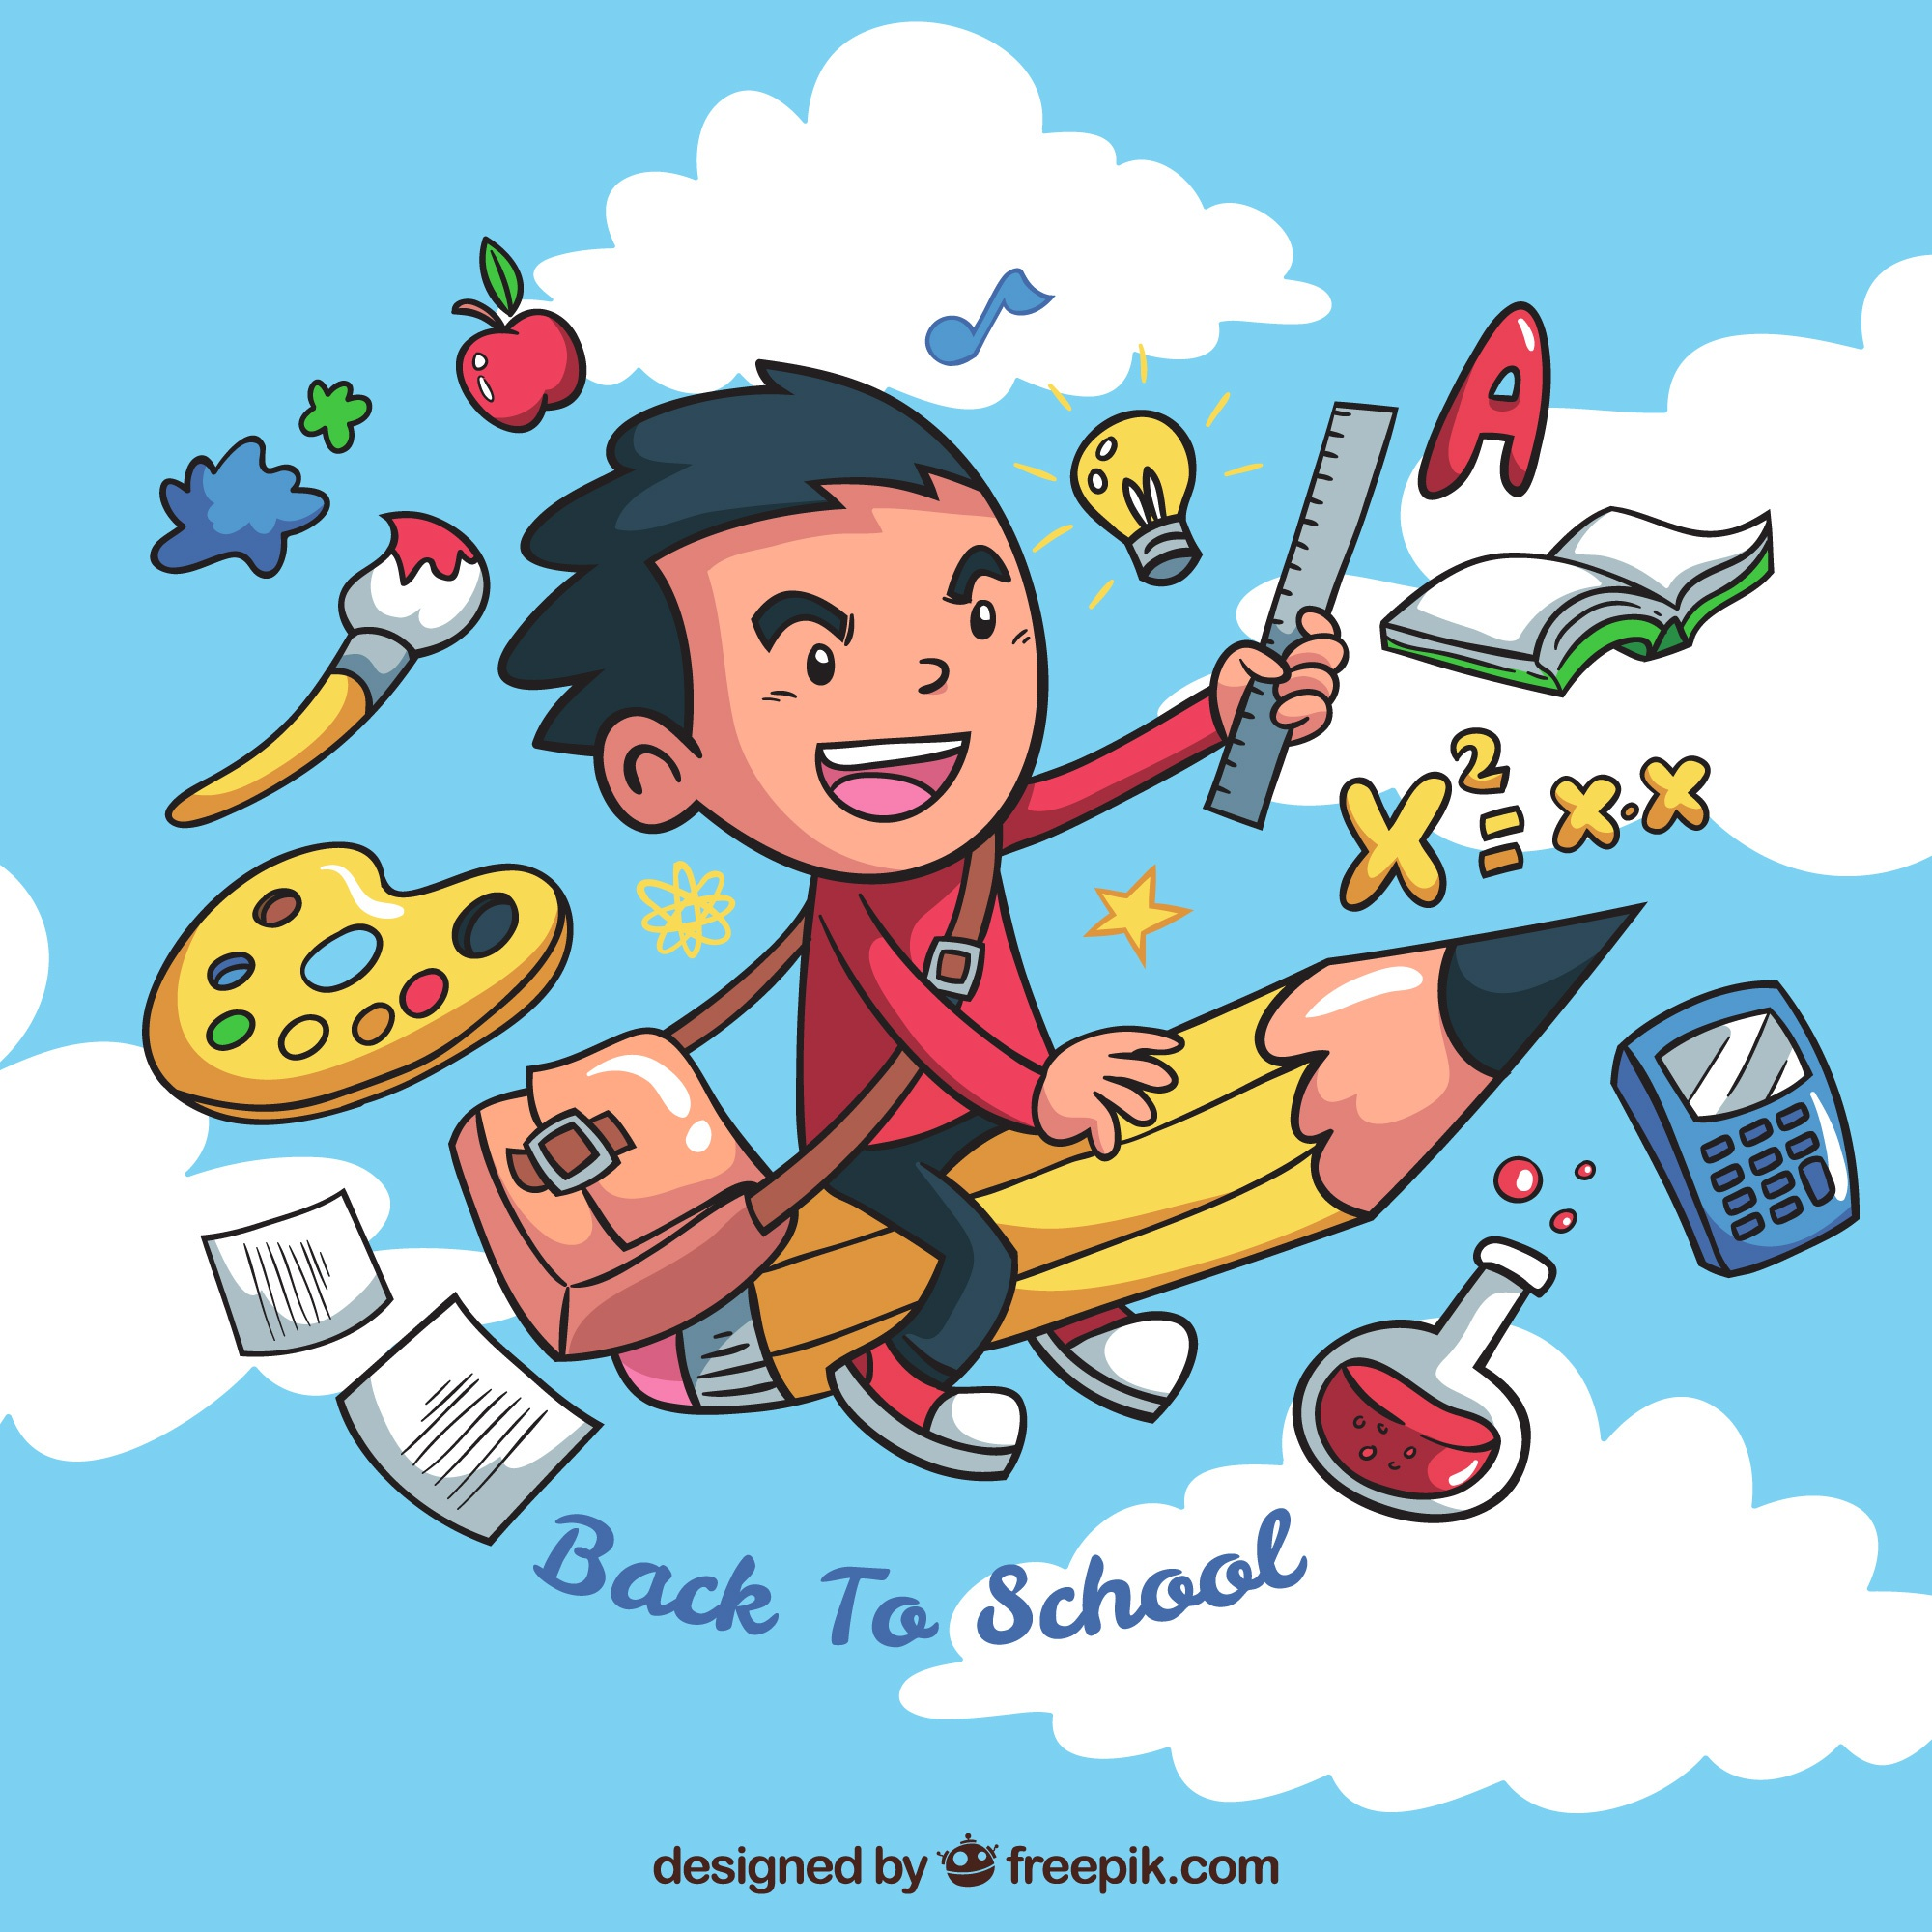 Creative boy background with school elements